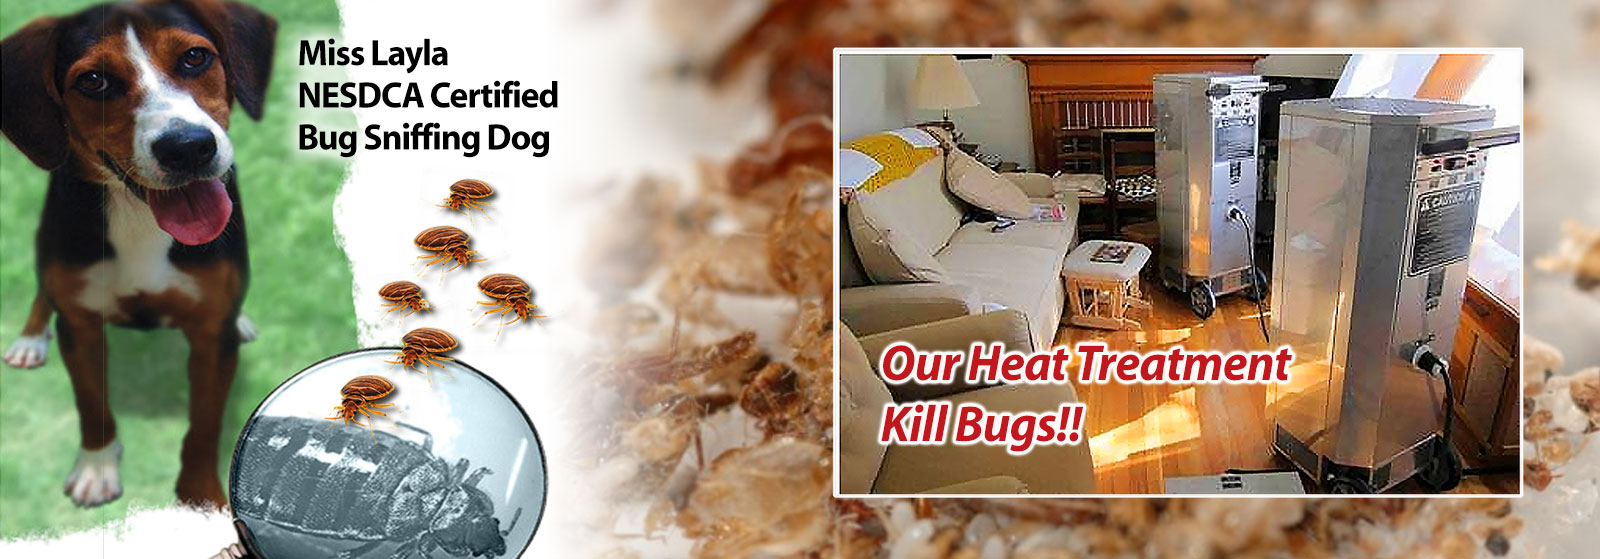 Bed And Breakfast Woburn Bed Bug Treatment In Woburn Ma Yankee Pest Control